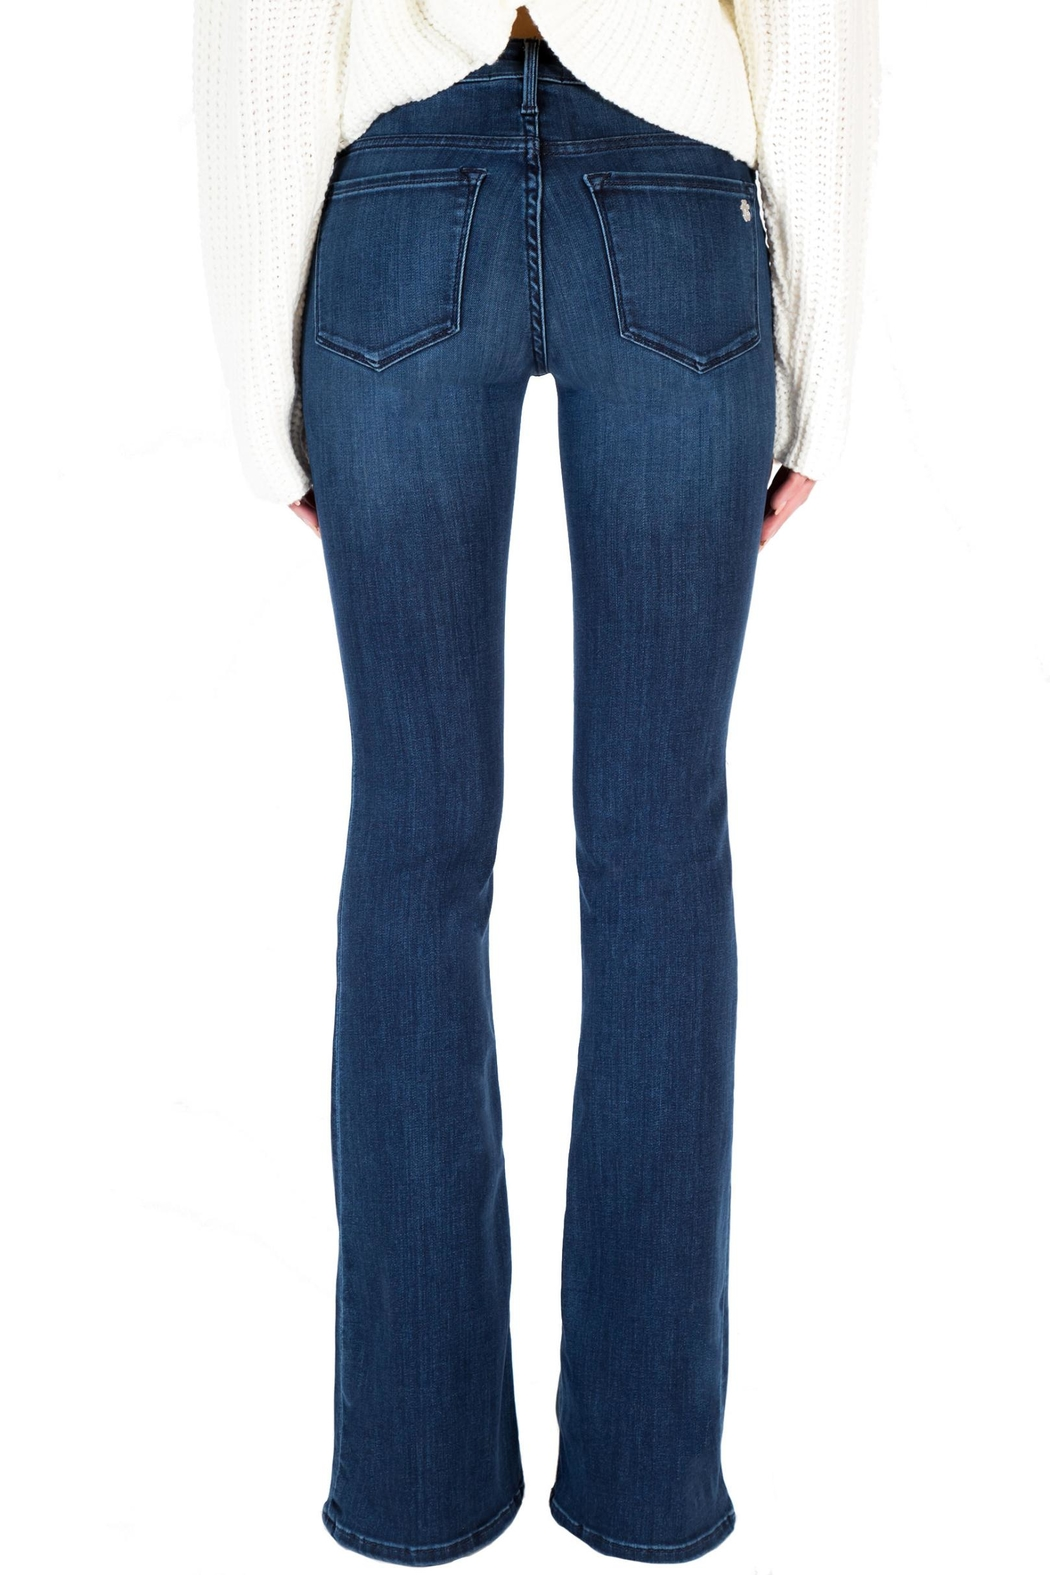 Black Orchid Denim Mia Mid-Rise Skinny-Flare - Side Cropped Image